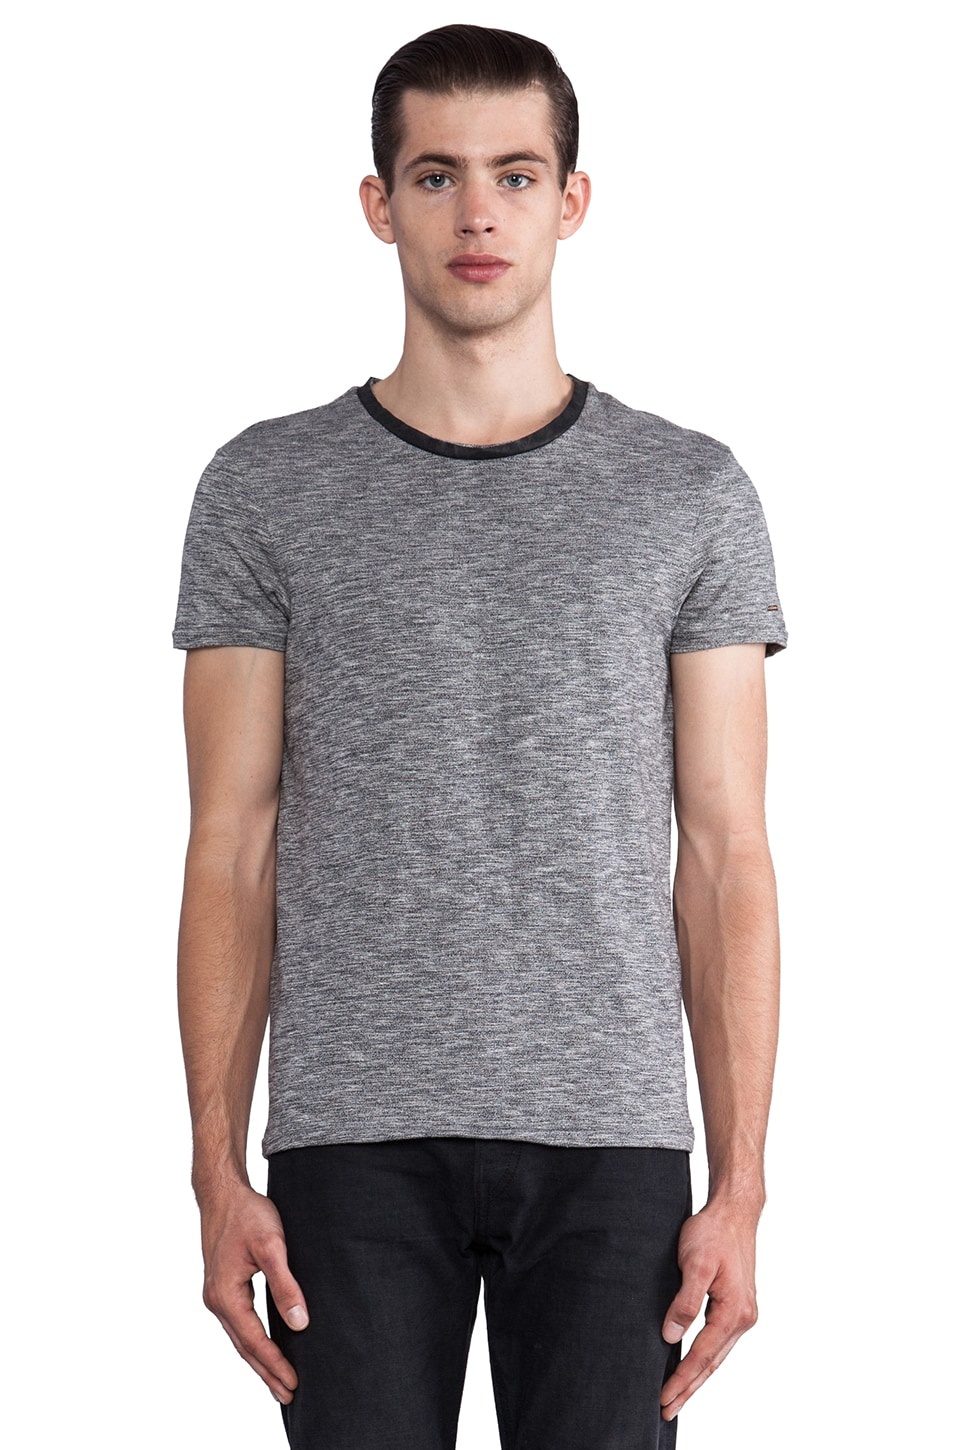 Scotch & Soda Crew Melange Serie Tee w/ Leather Collar in Charcoal